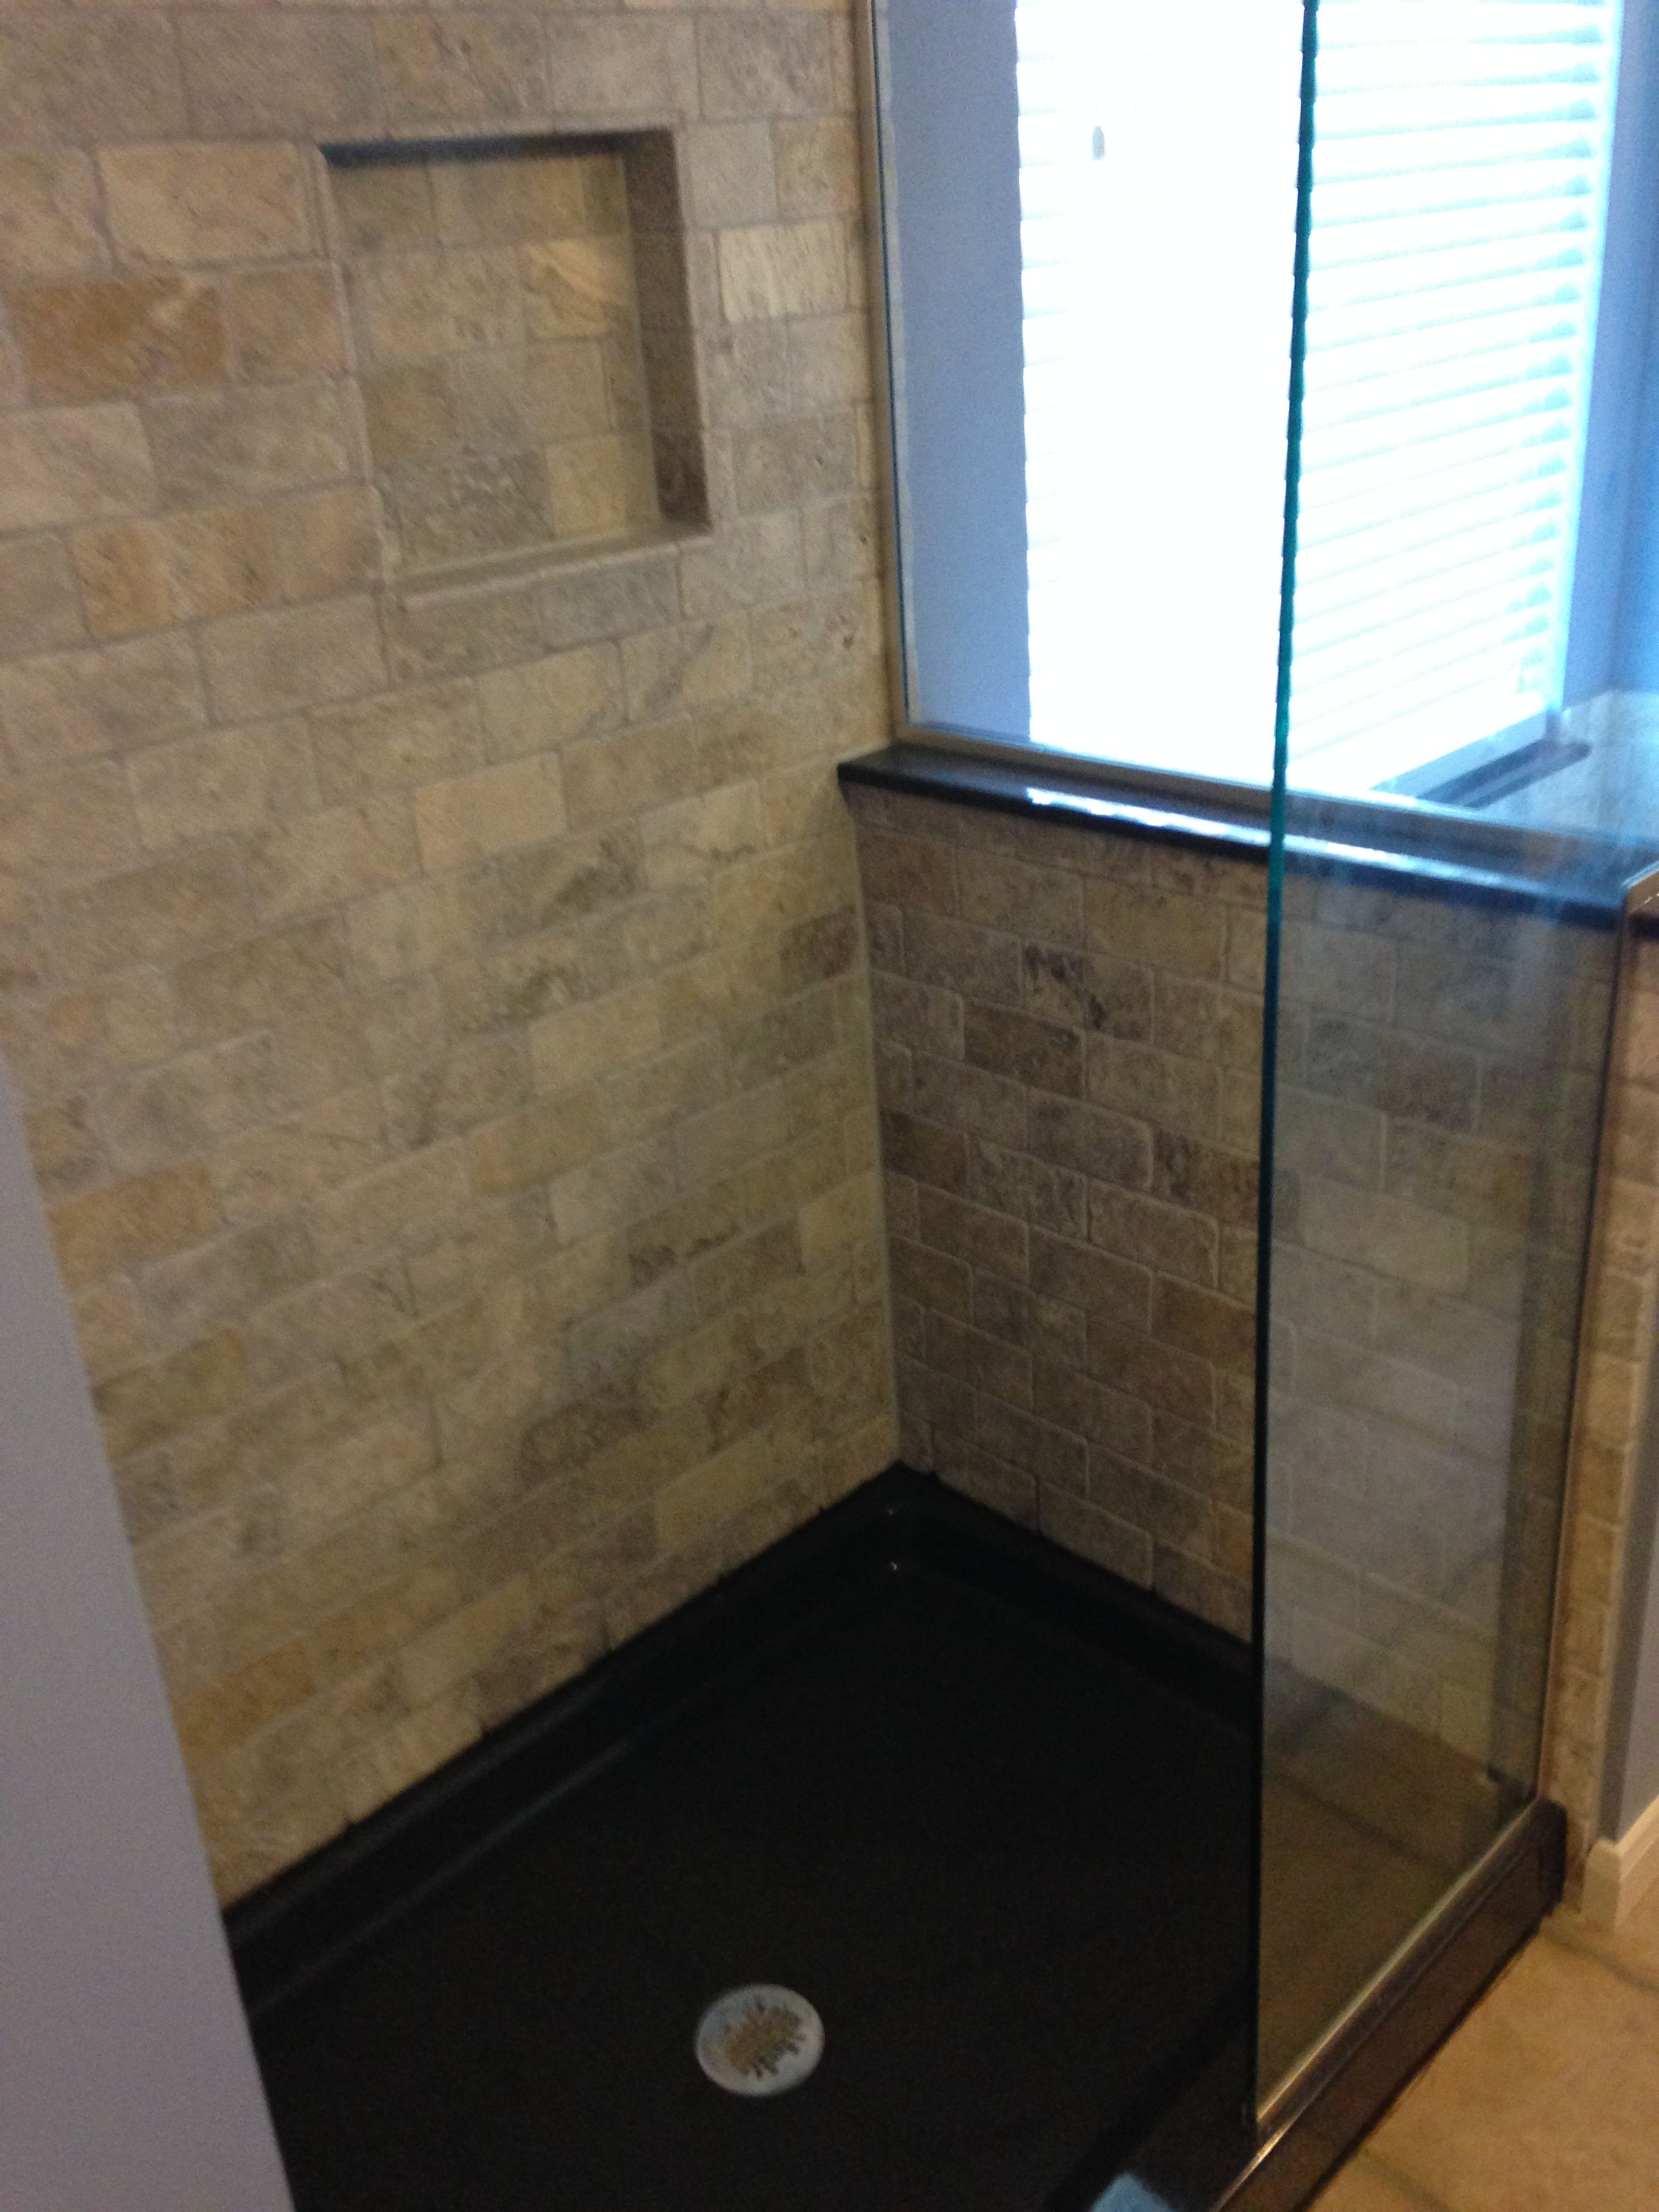 Travertine subway wall tile and shower niche. The Onyx ...